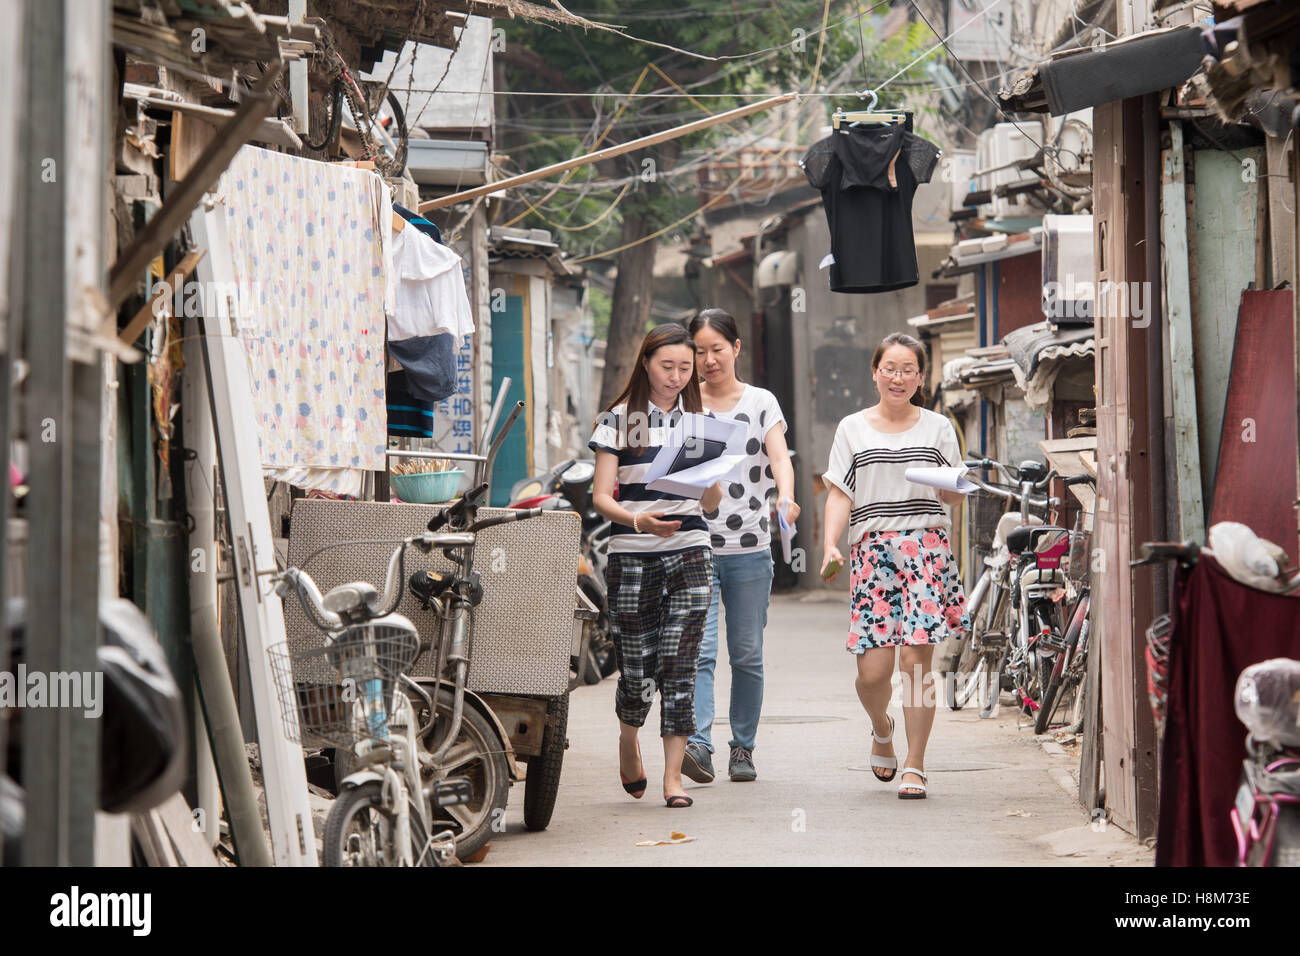 Beijing, China - Women walking in a Hutong located in Central Beijing. - Stock Image